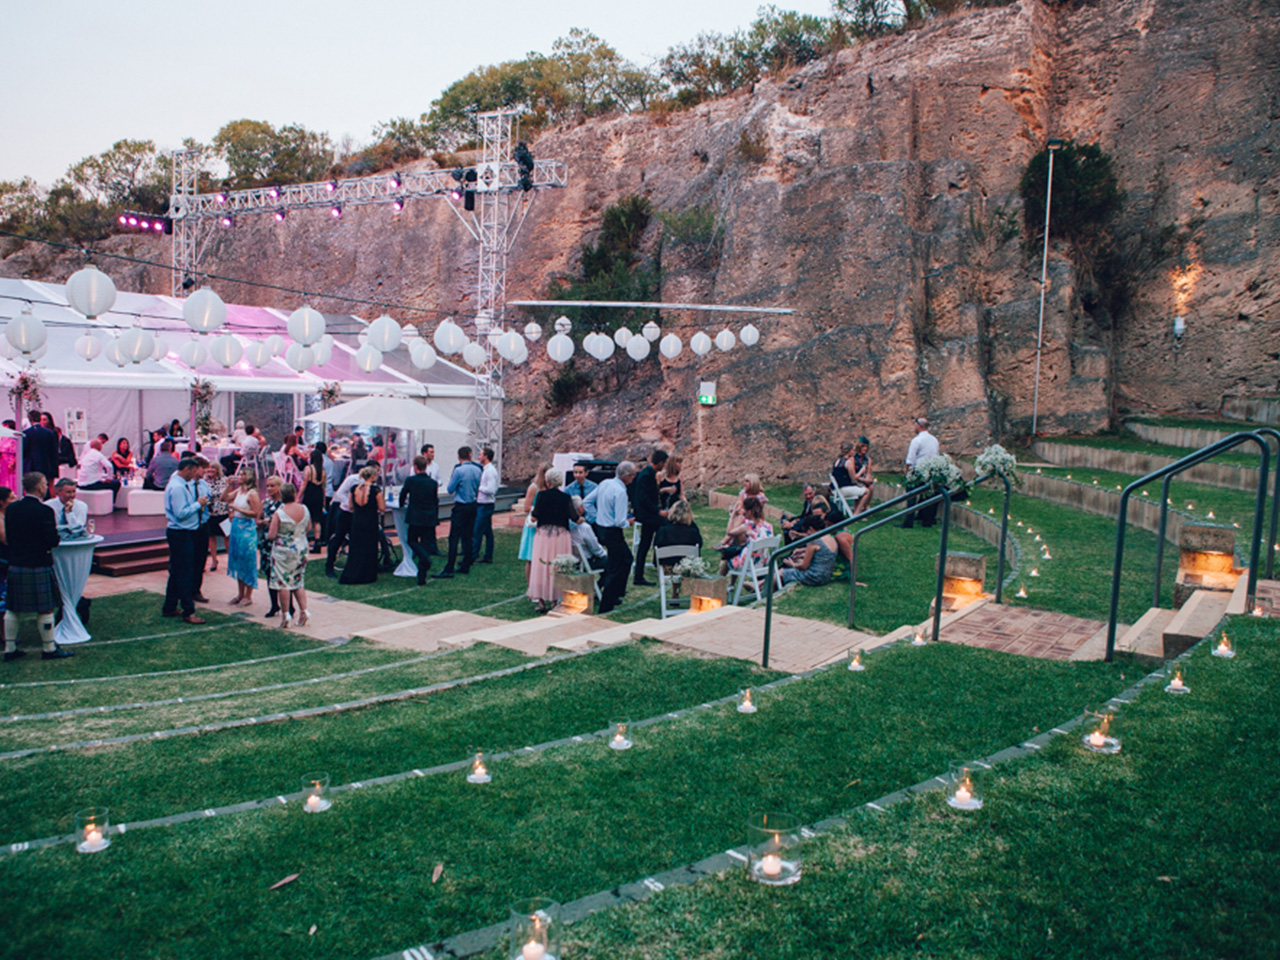 People Gathering Outside The Function Room In Dusk With Cocktail Tables And Round Hanging Lights